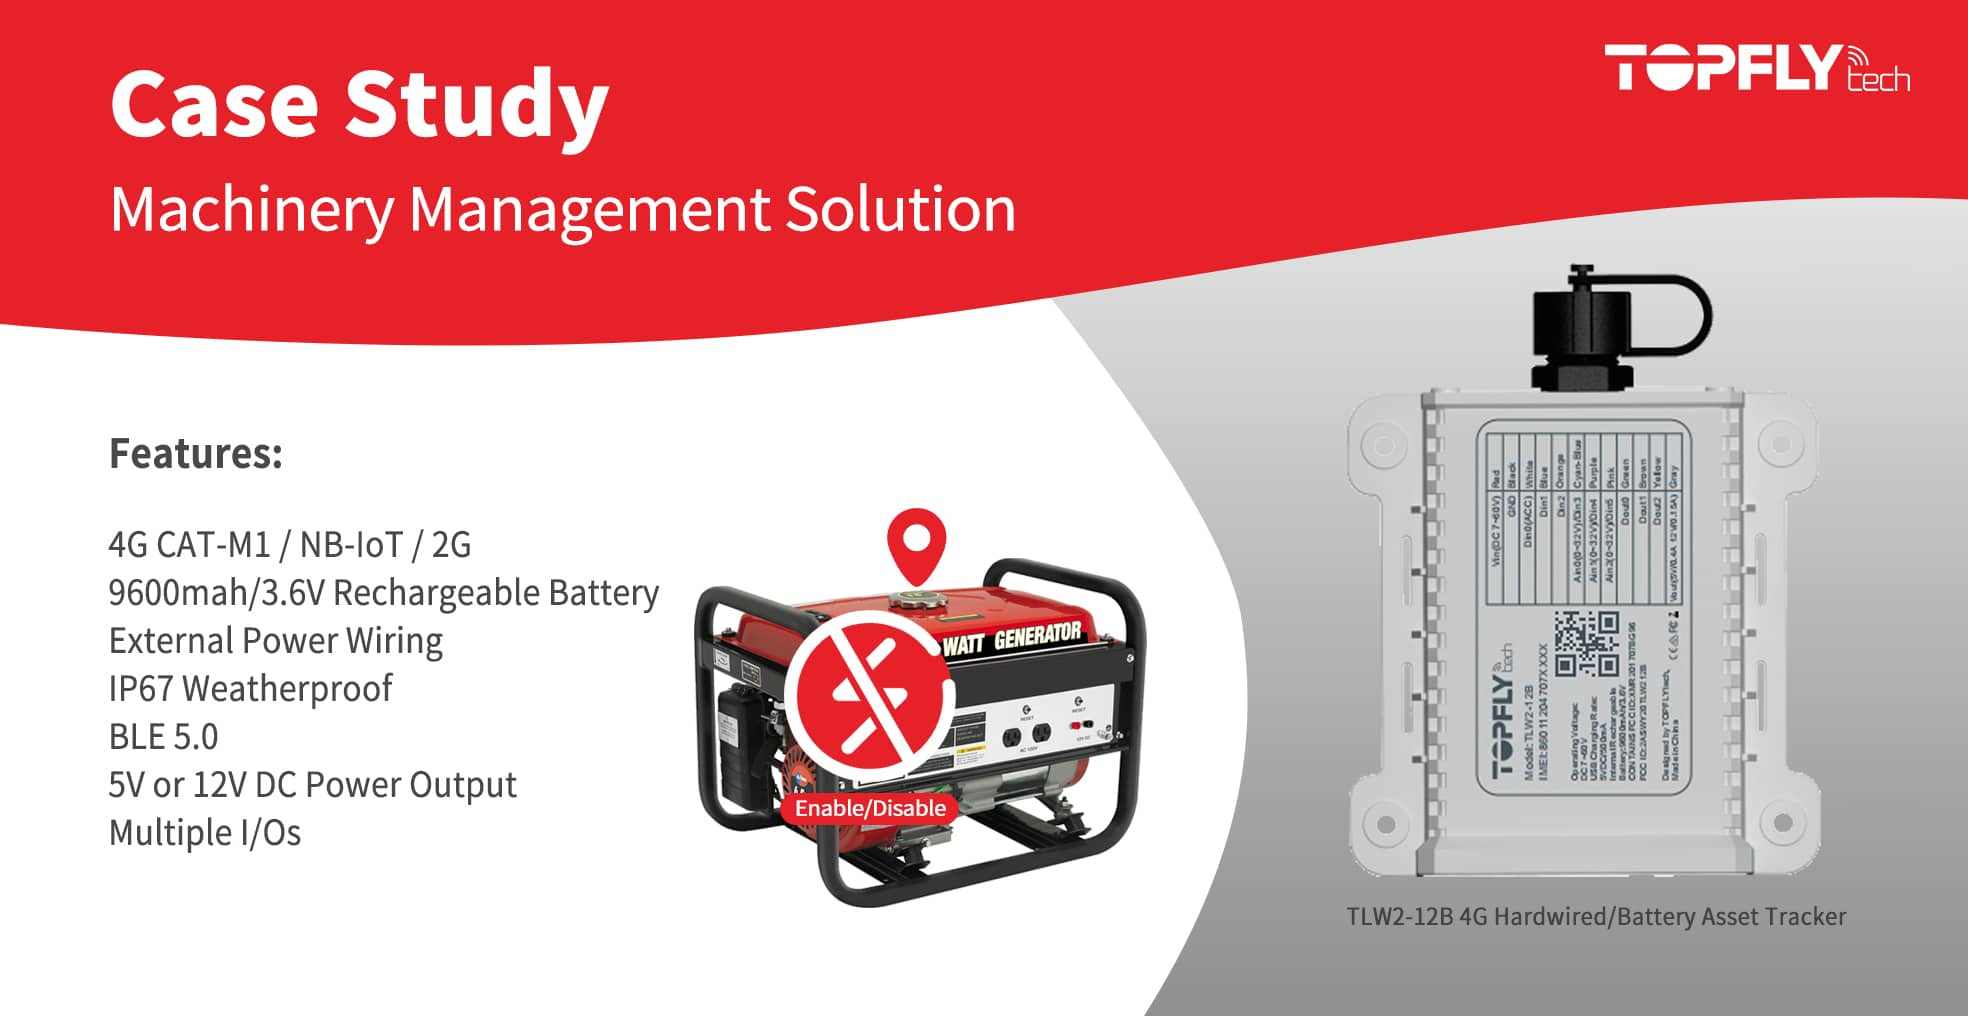 Case Study | Machinery Management Solution